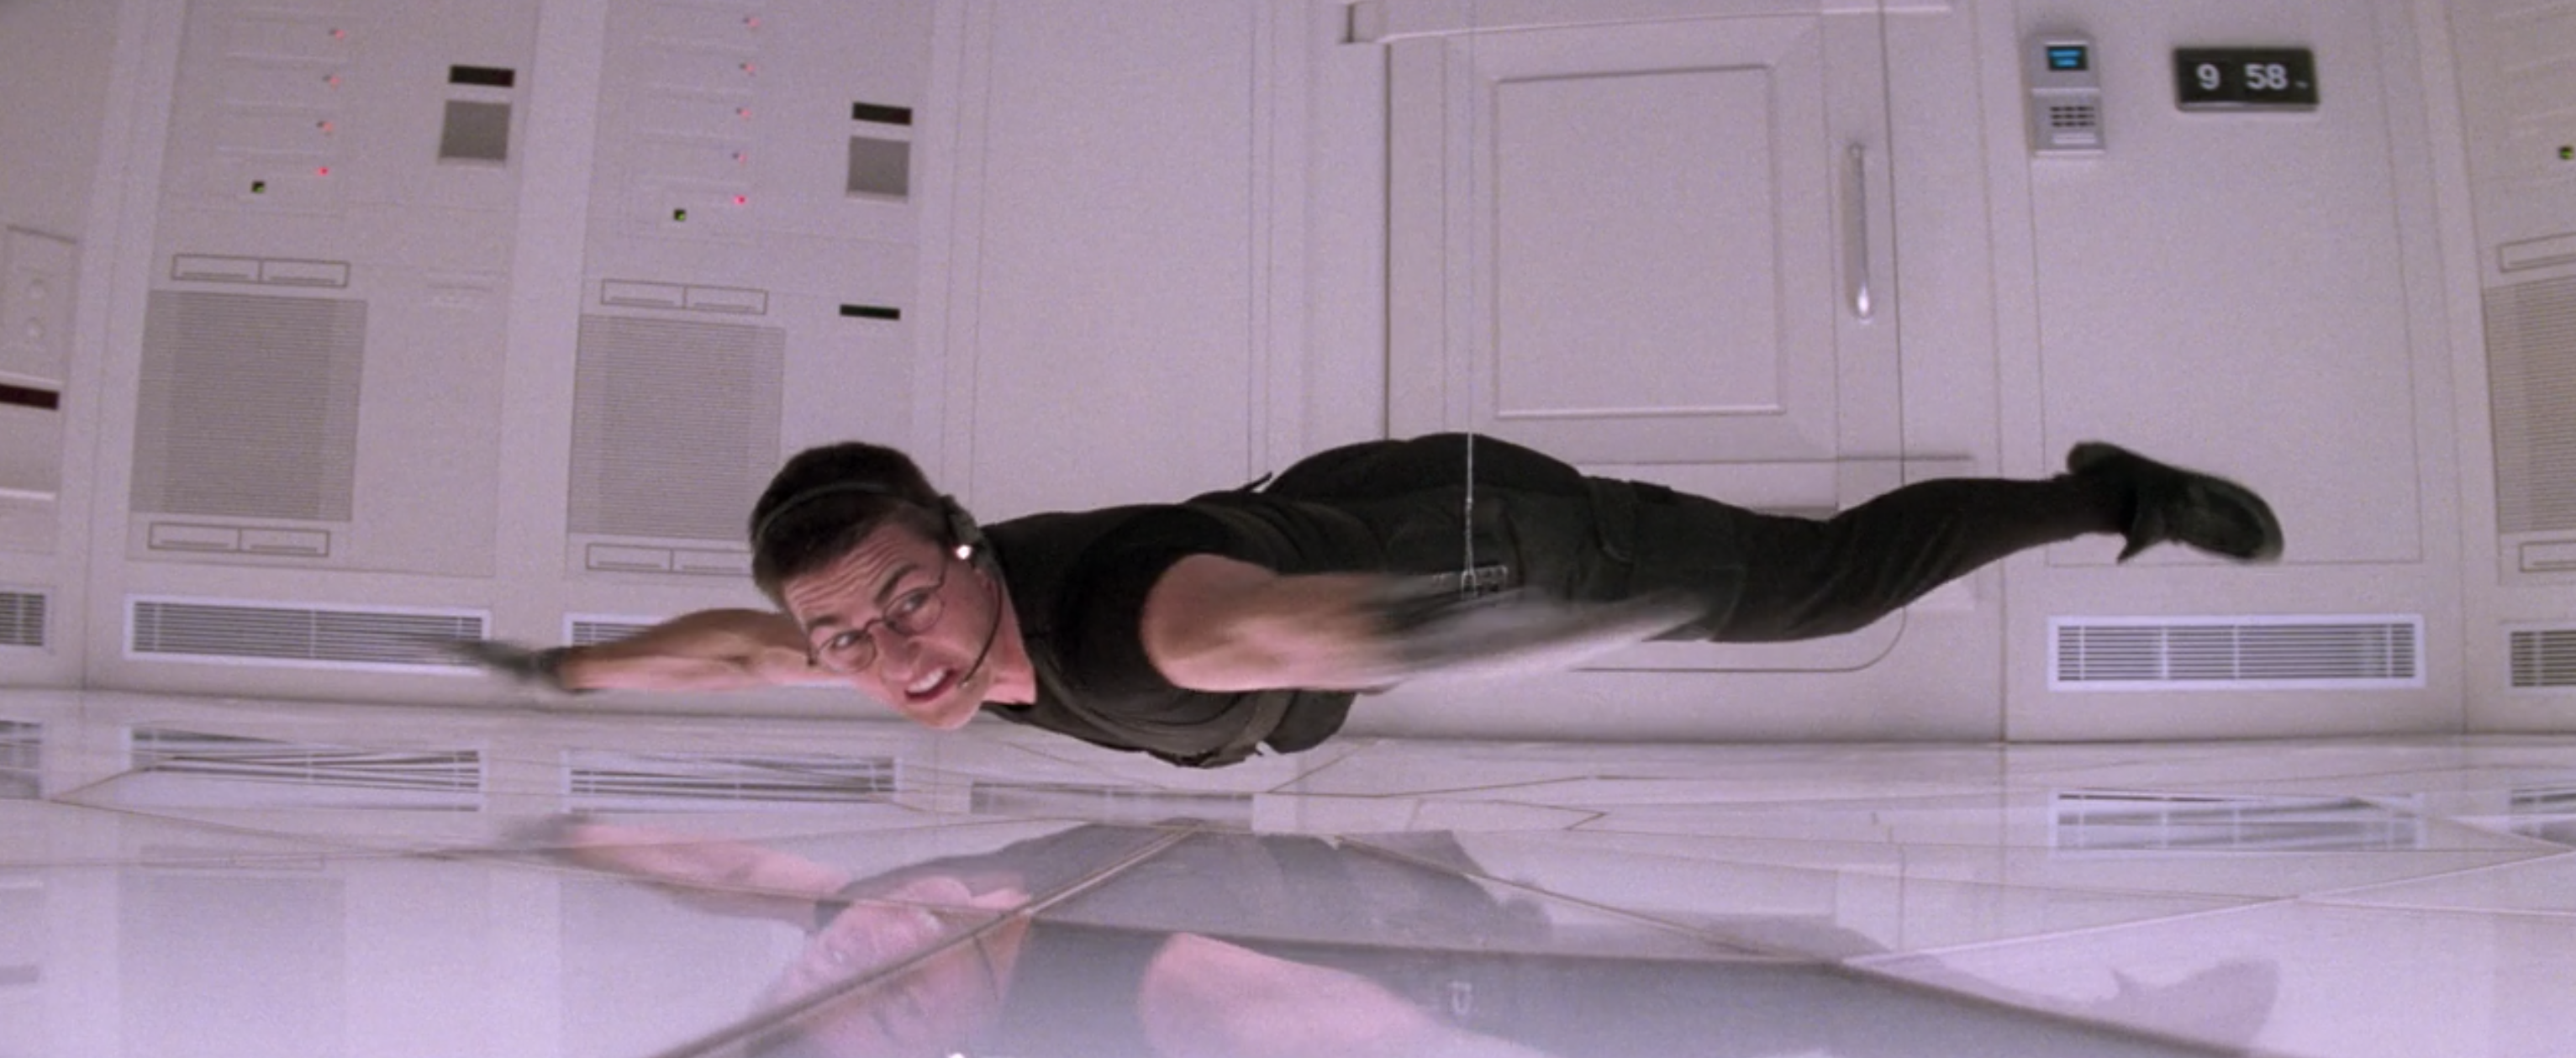 Best Paramount Plus shows and movies - mission impossible